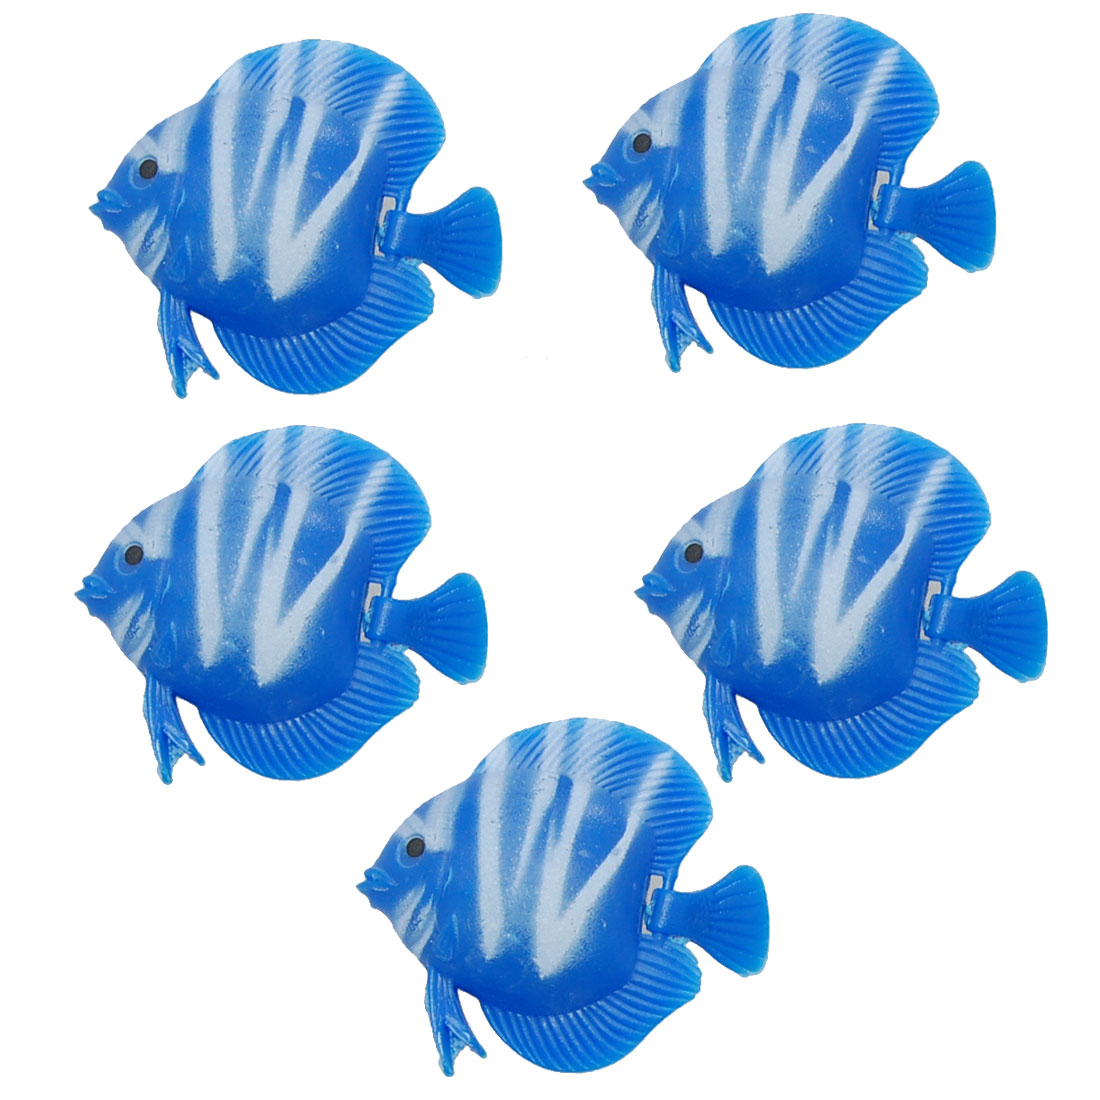 5 PCS Blue Vividly Plastic Floating Fish Fishing Tank Aquarium Decor